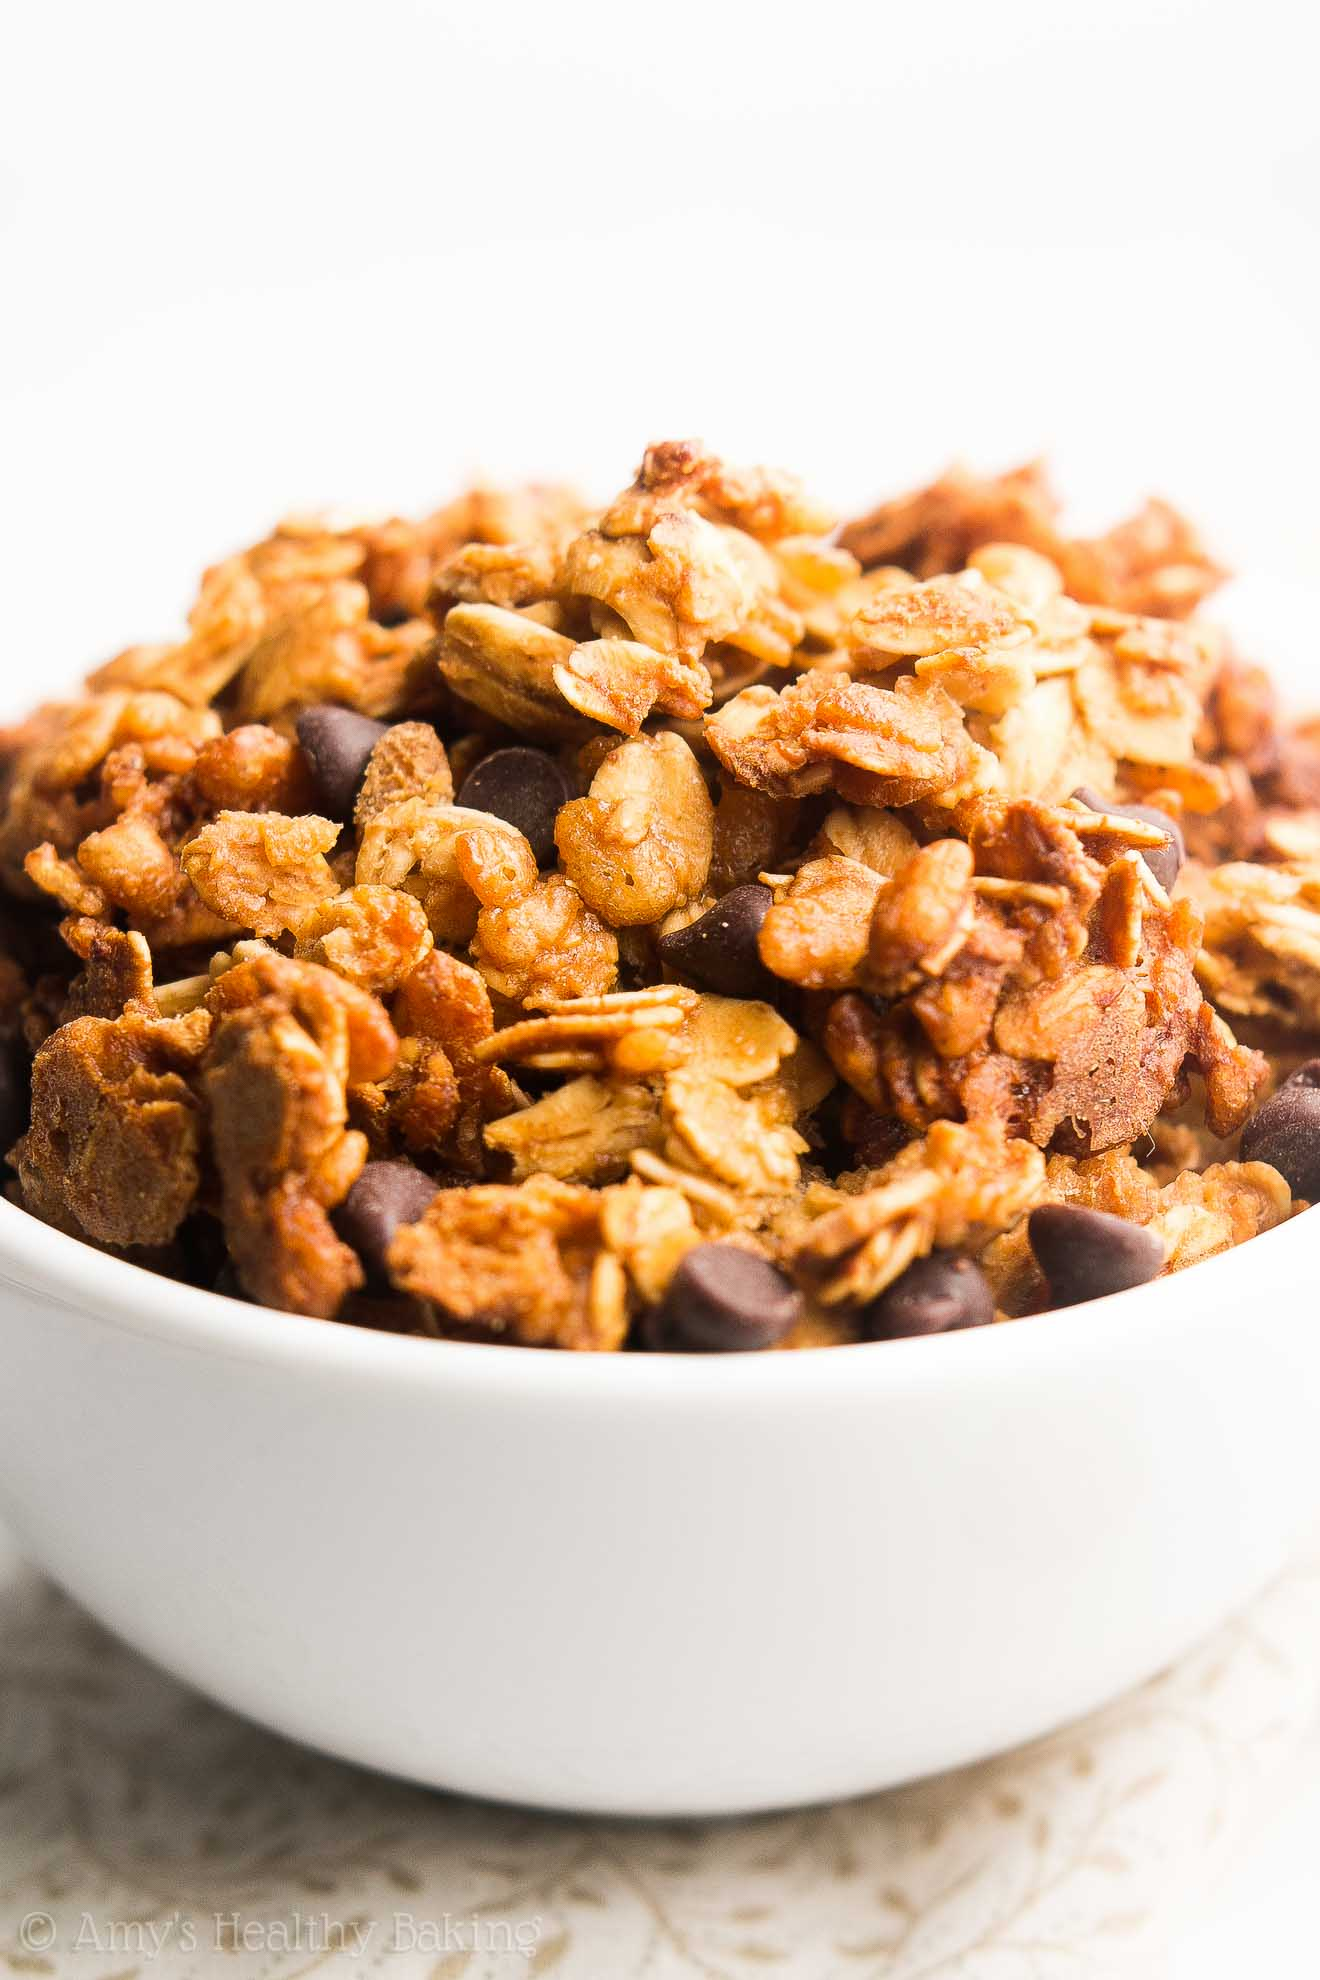 Healthy Chocolate Chip Peanut Butter Granola